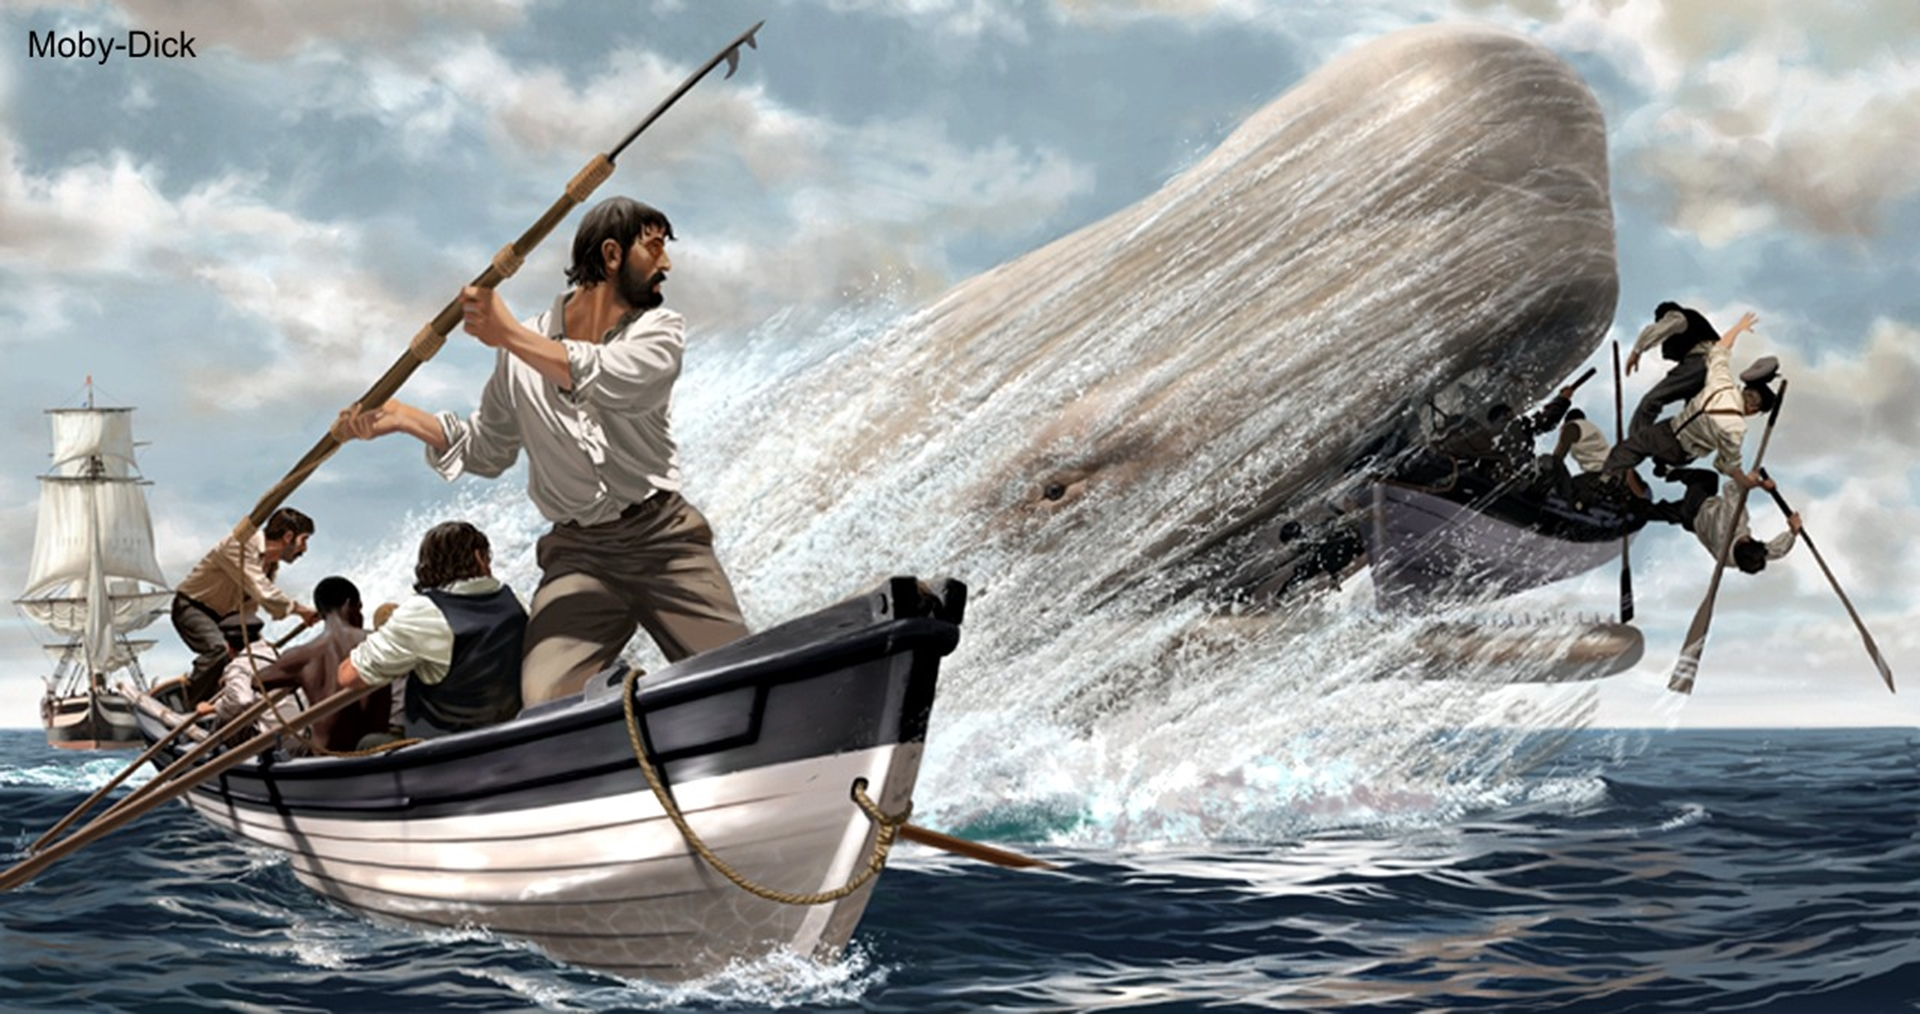 Are moby dick location herman mellville